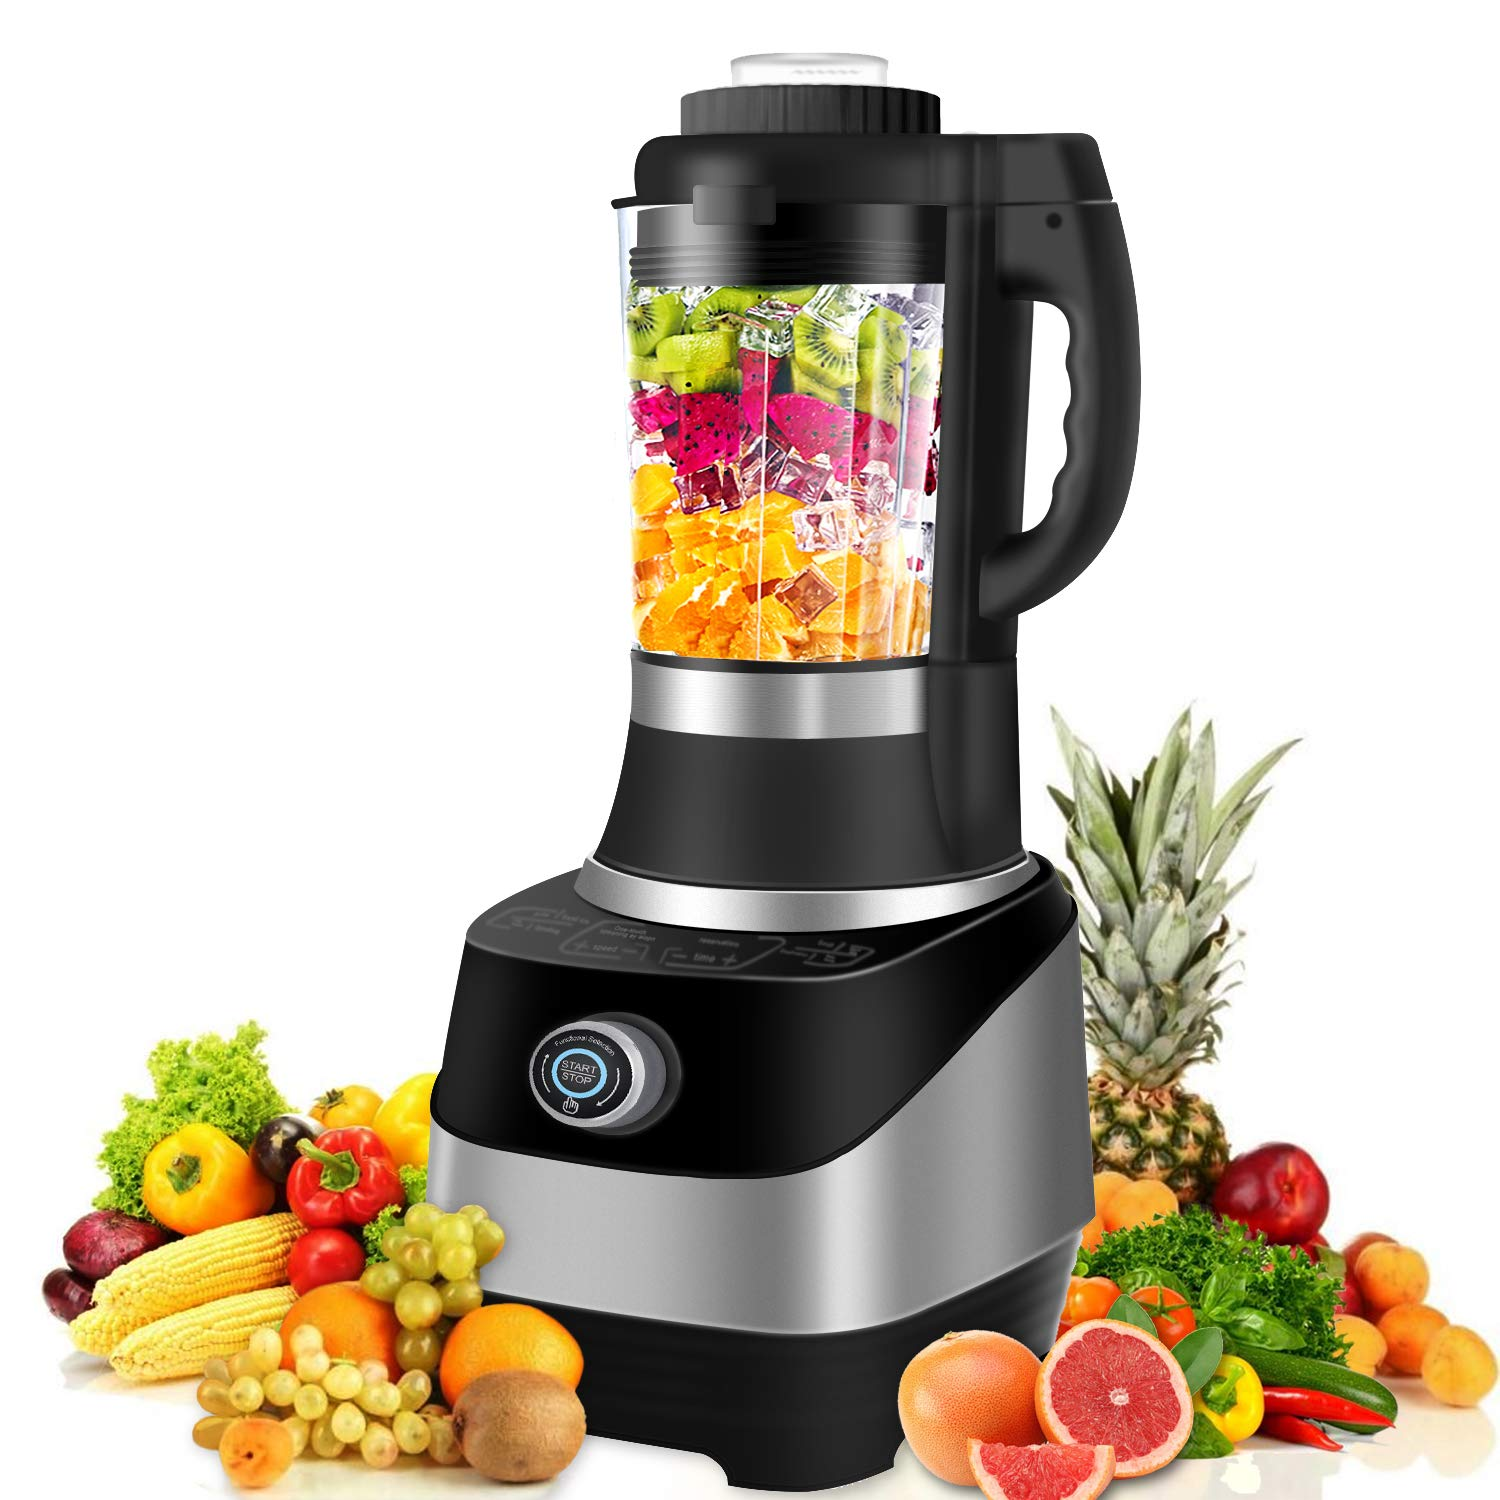 Multifunctional Blender, 4 in 1 Smoothie Blender Baby Food Maker, Soup maker 800W Auto-temperature Control Food Processor, Warm Disinfect